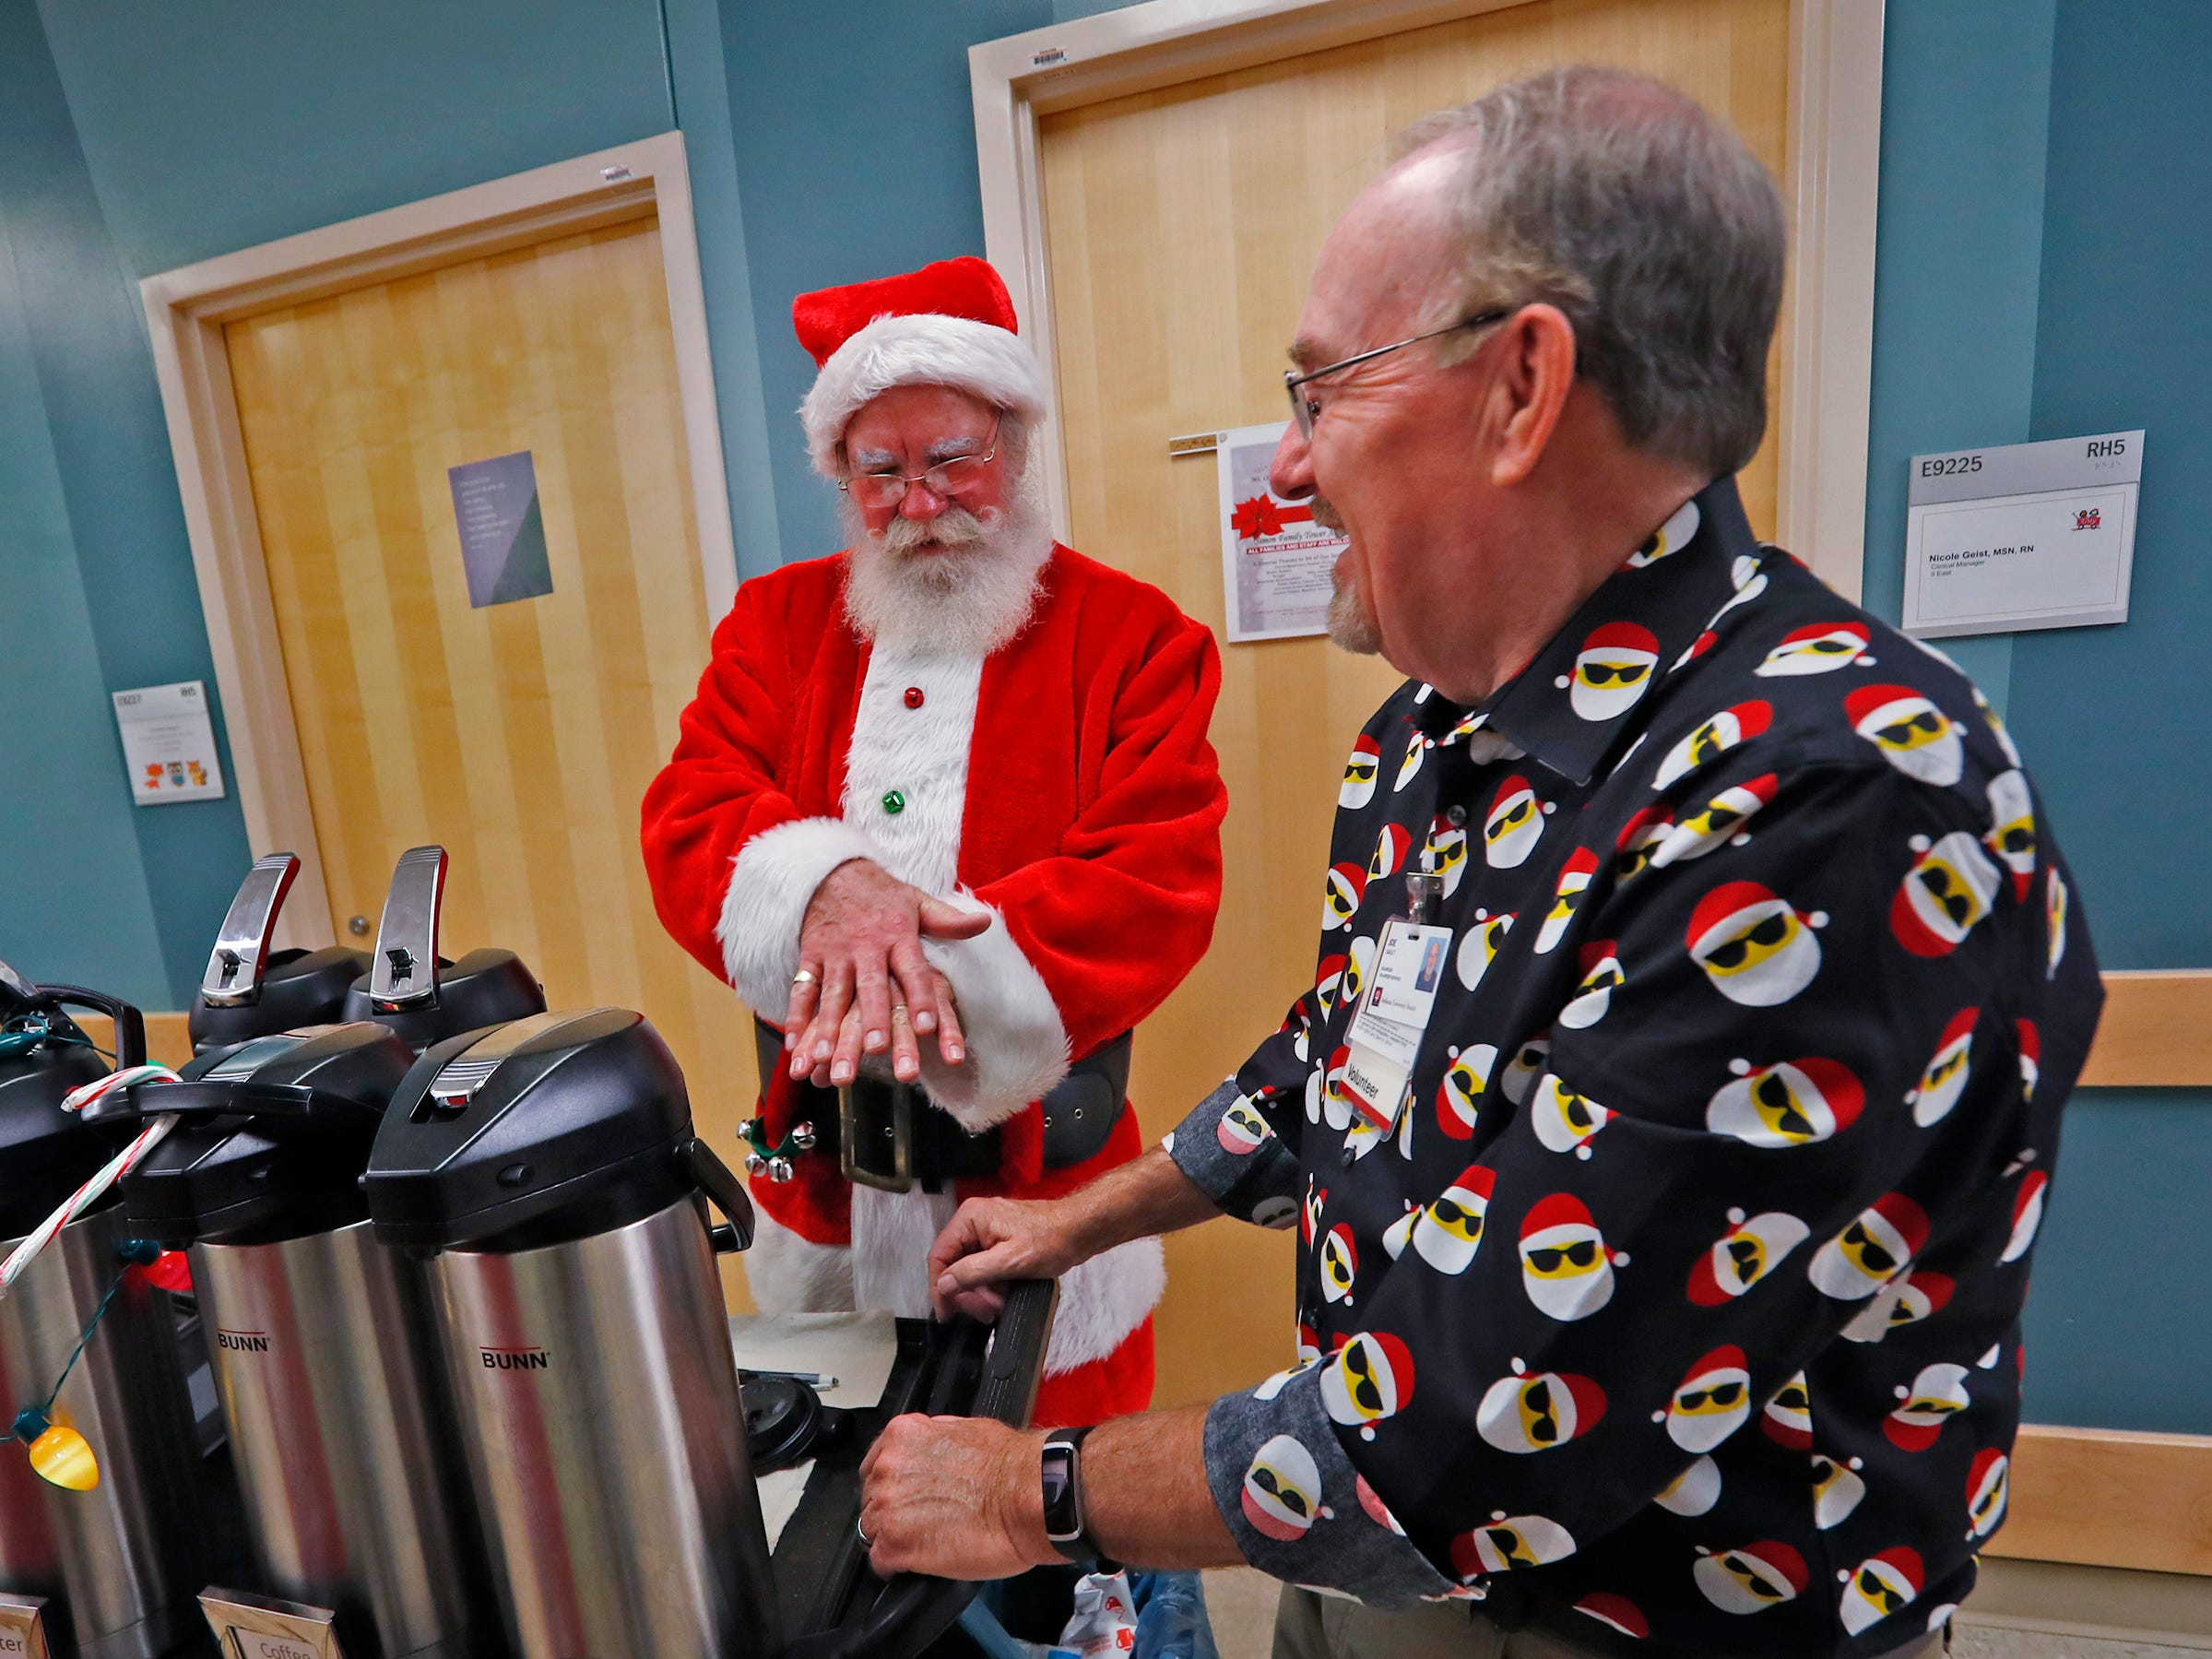 Santa, aka Bill Armstrong, jokes about how to wash hands with volunteer Joe Gault, while Santa and Mrs. Claus visit with kids at Riley Children's Health, Thursday, Dec. 13, 2018.